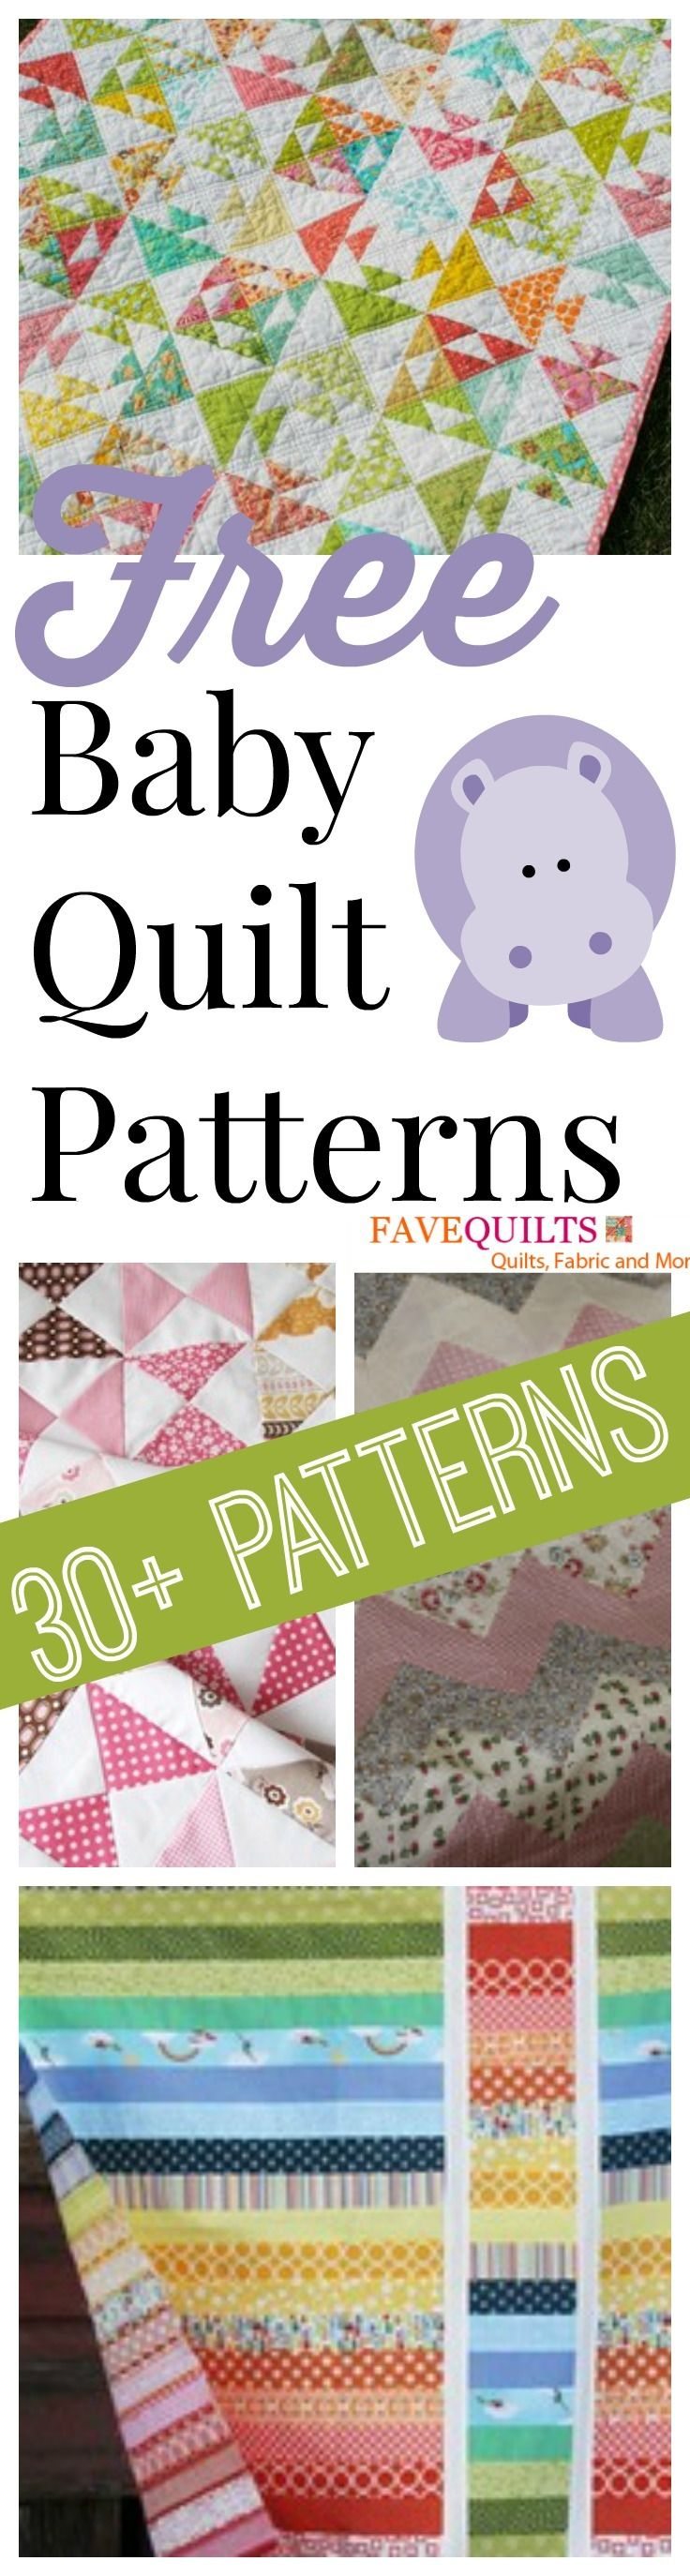 Free baby bed quilt patterns - 34 Free Baby Quilt Patterns